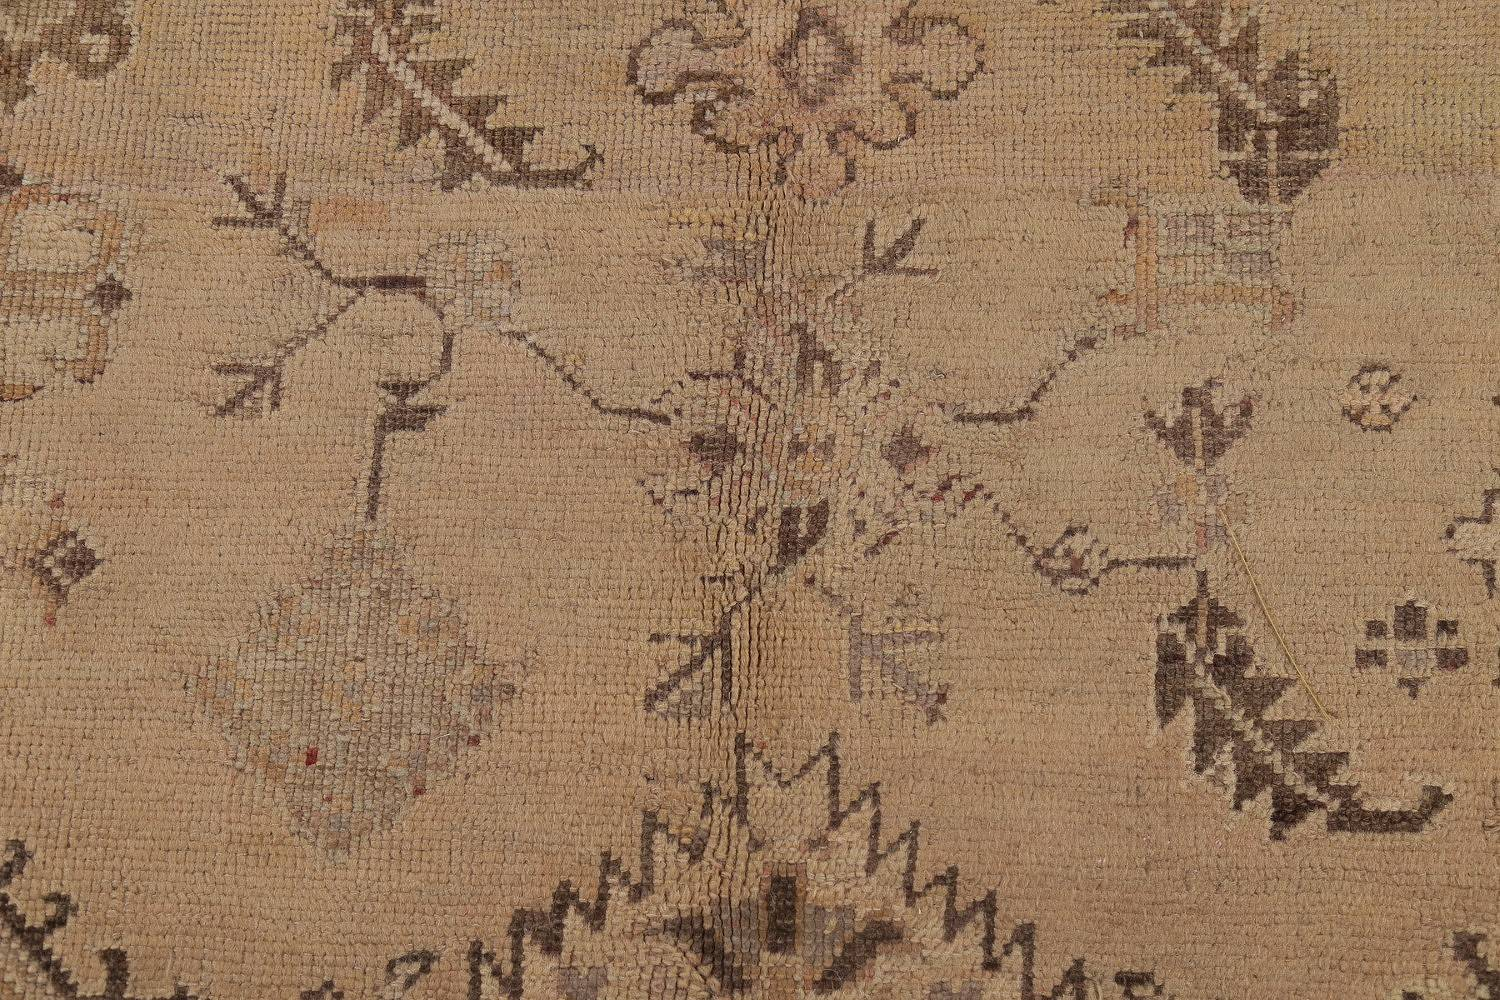 Pre-1900 Antique All-Over Geometric Muted Color Oushak Turkish Area Rug 10x13 image 8